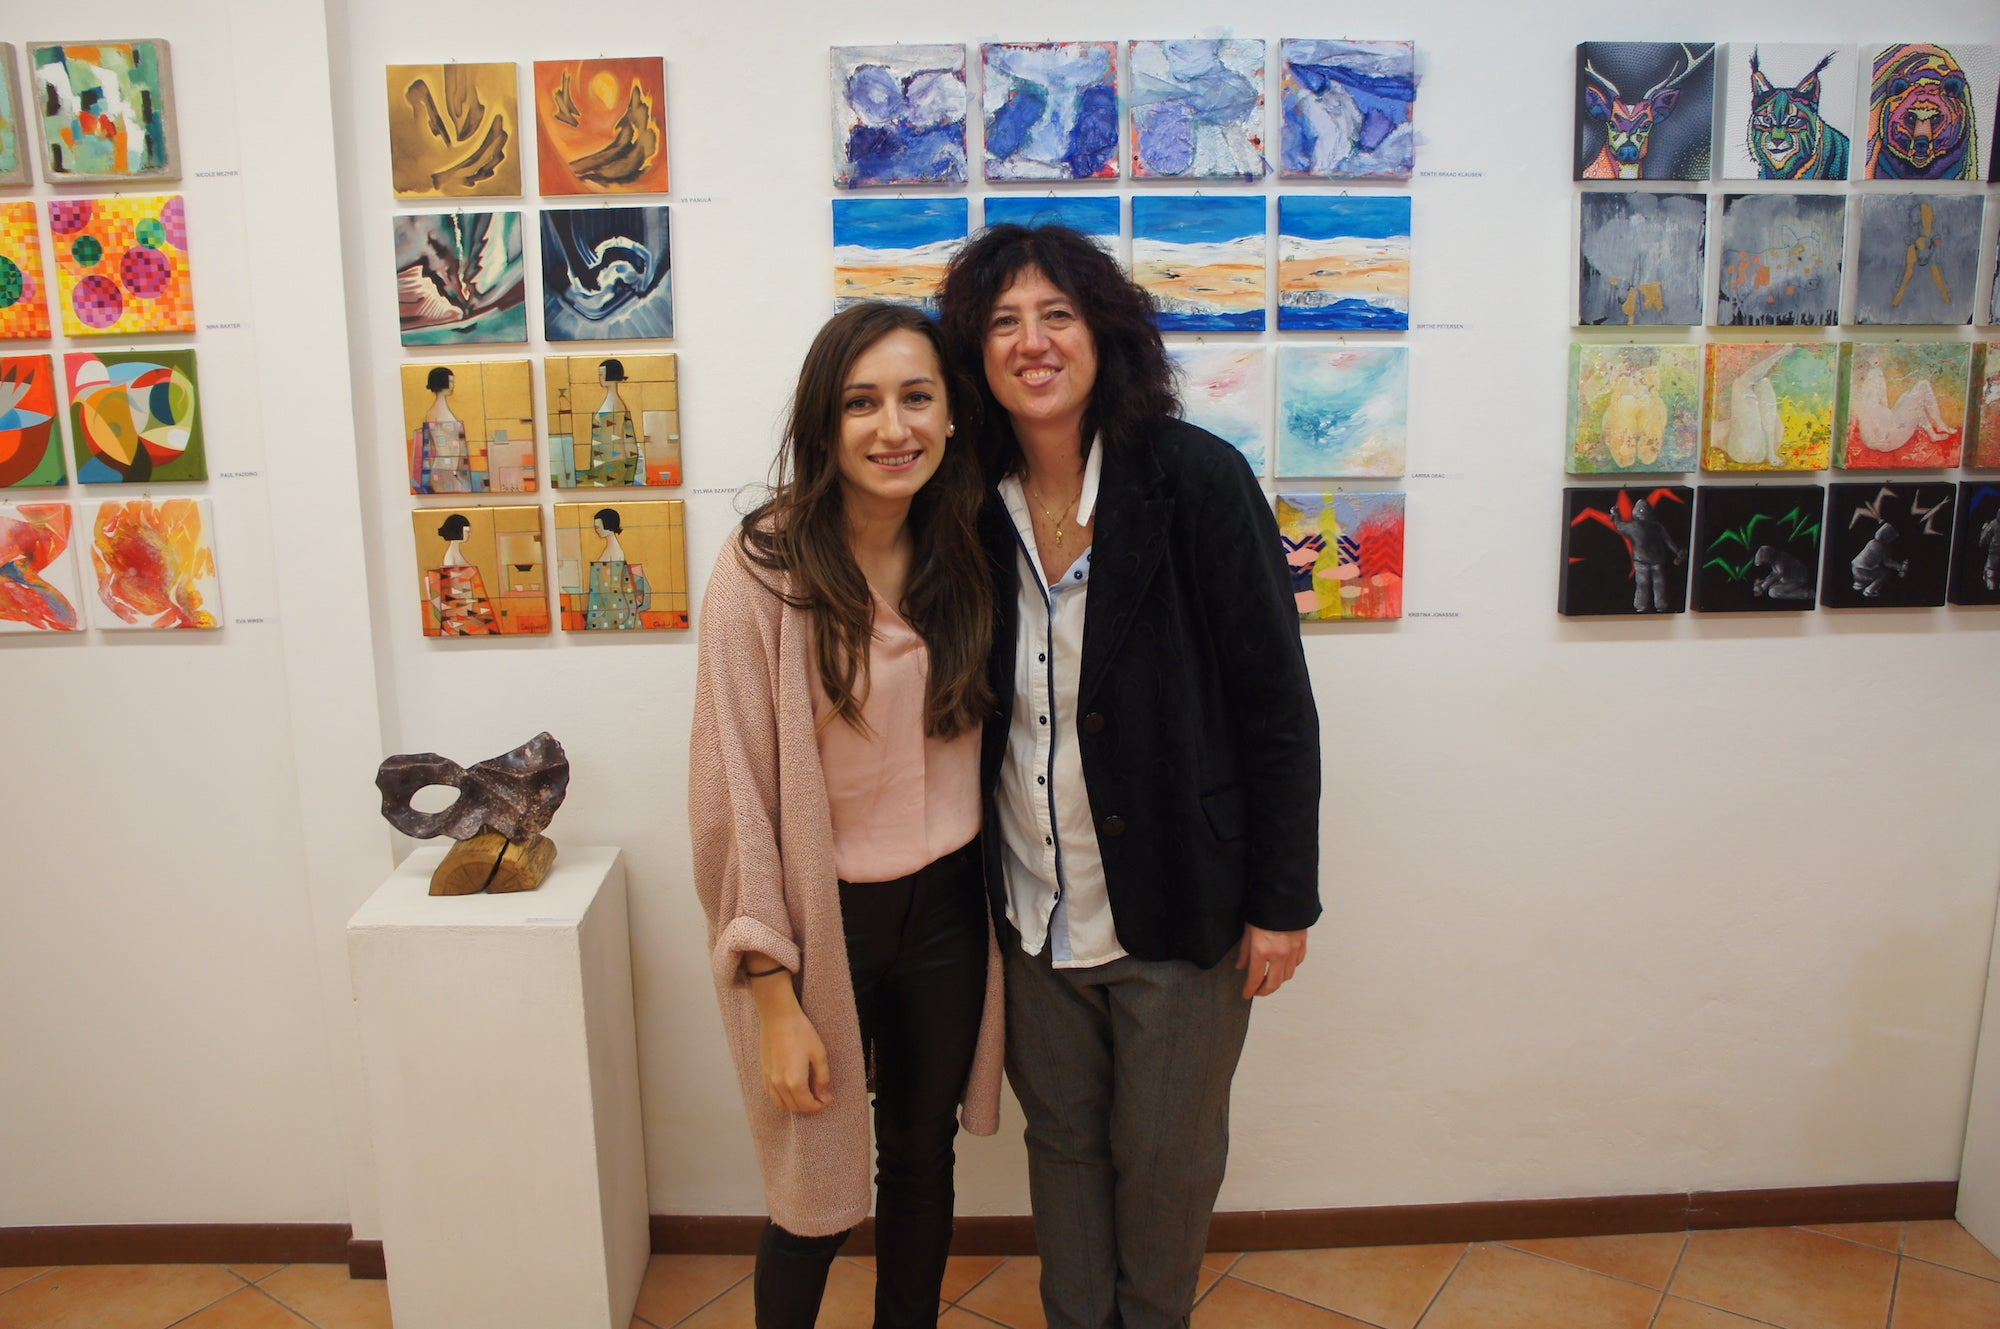 with paola trevisan from trevisan international art